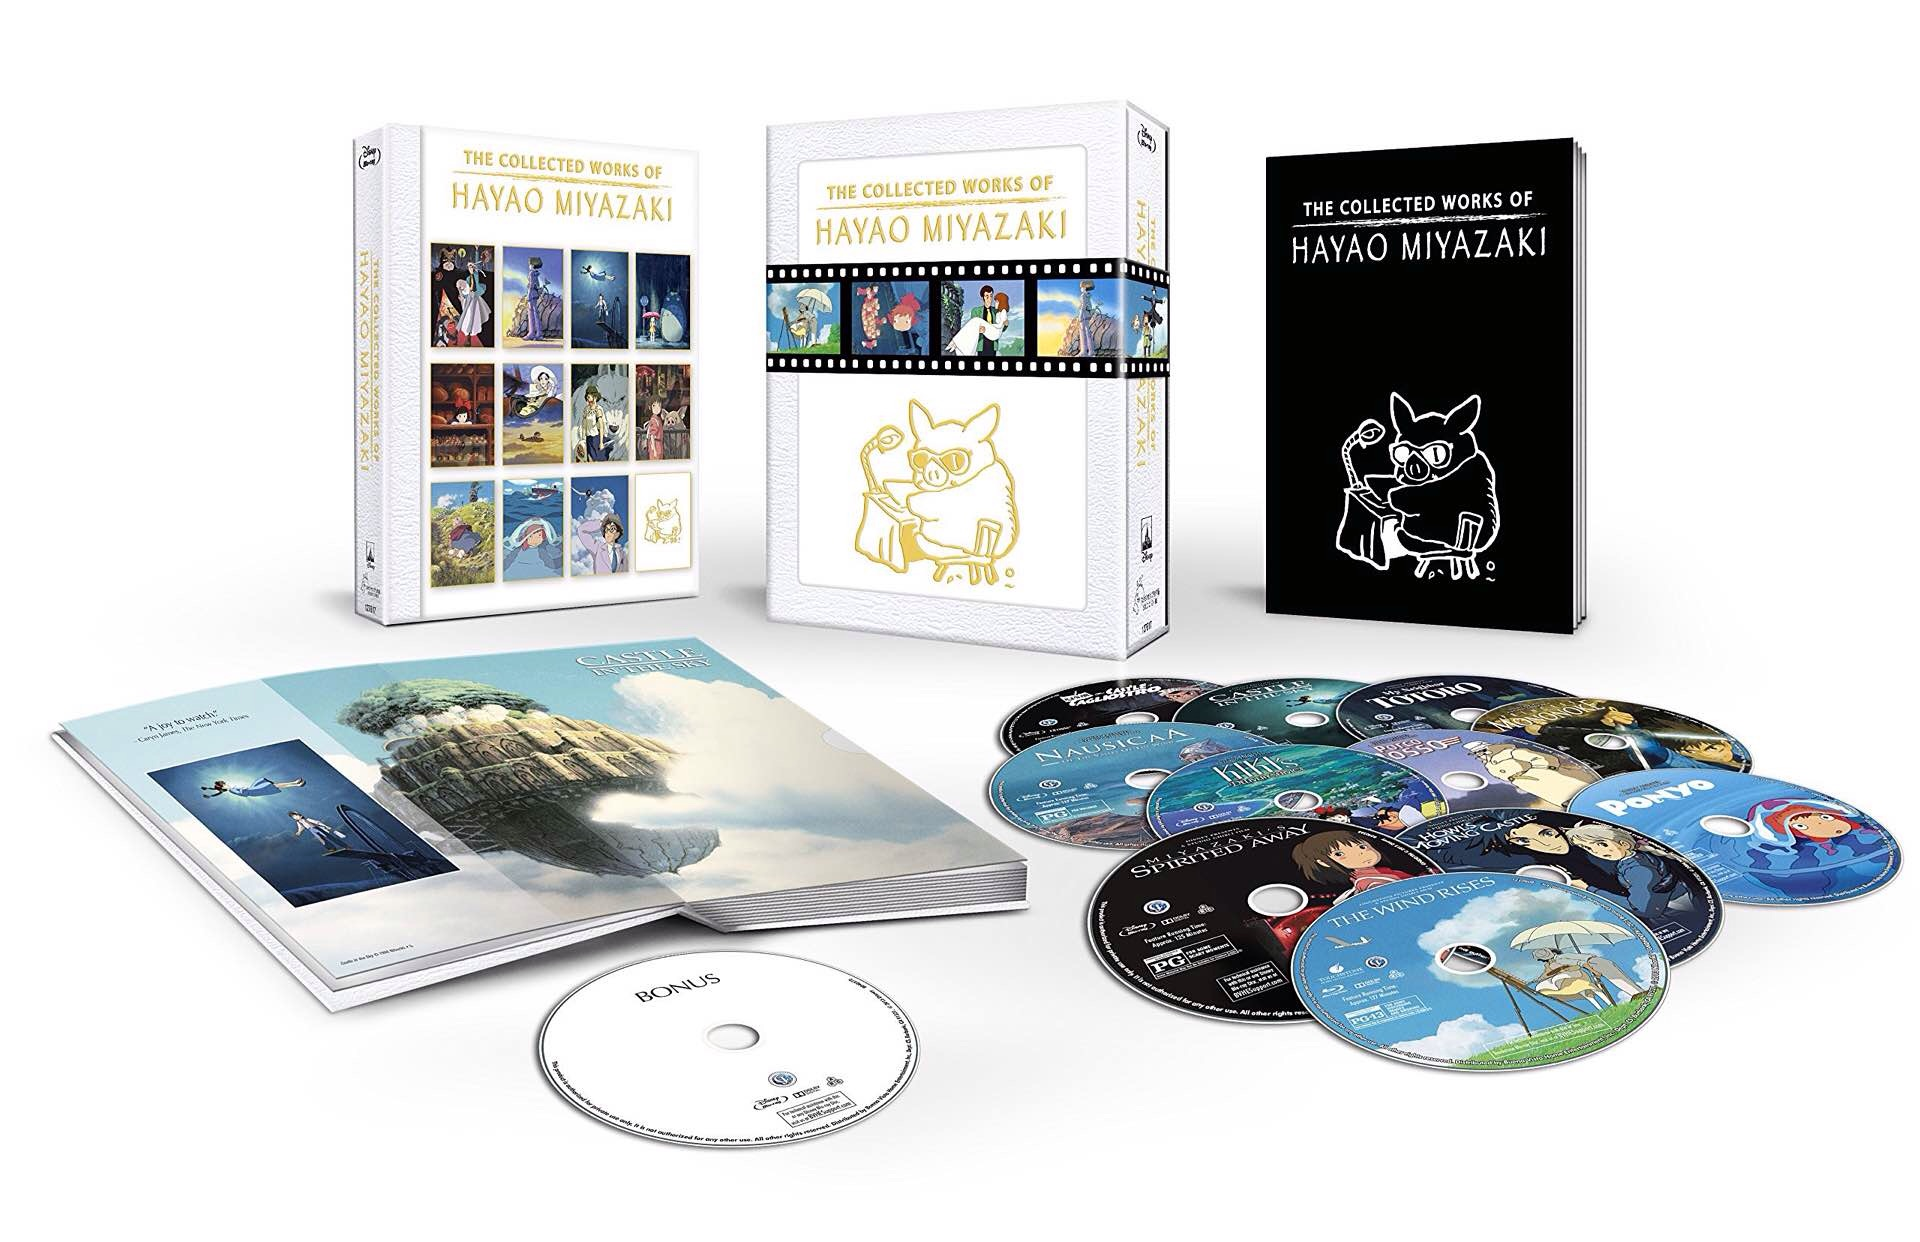 the-collected-works-of-hayao-miyazaki-on-blu-ray